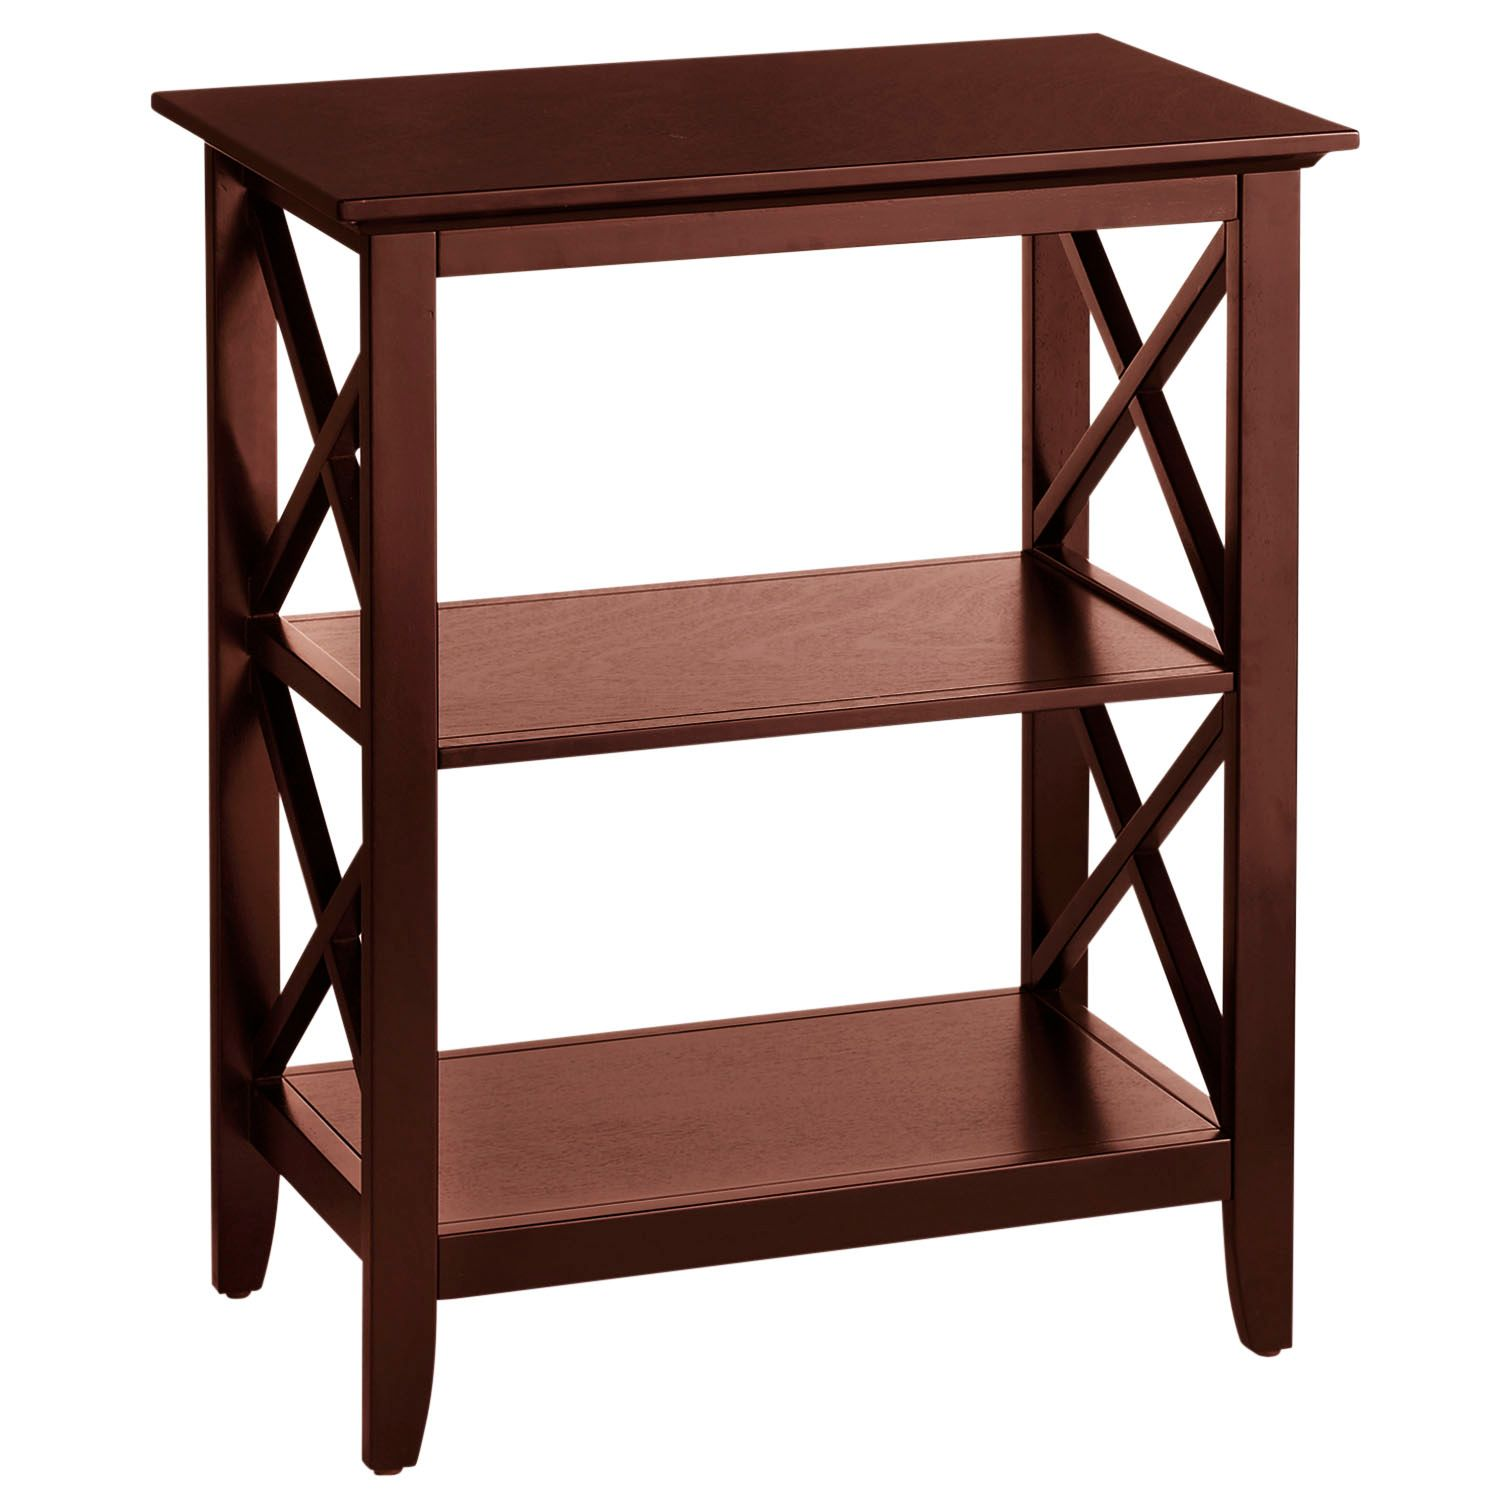 kenzie espresso brown accent table pier imports tables rustic wine rack front hall bunnings chairs and hiend accents barn door designs ethan allen ballan tiffany dragonfly lamp